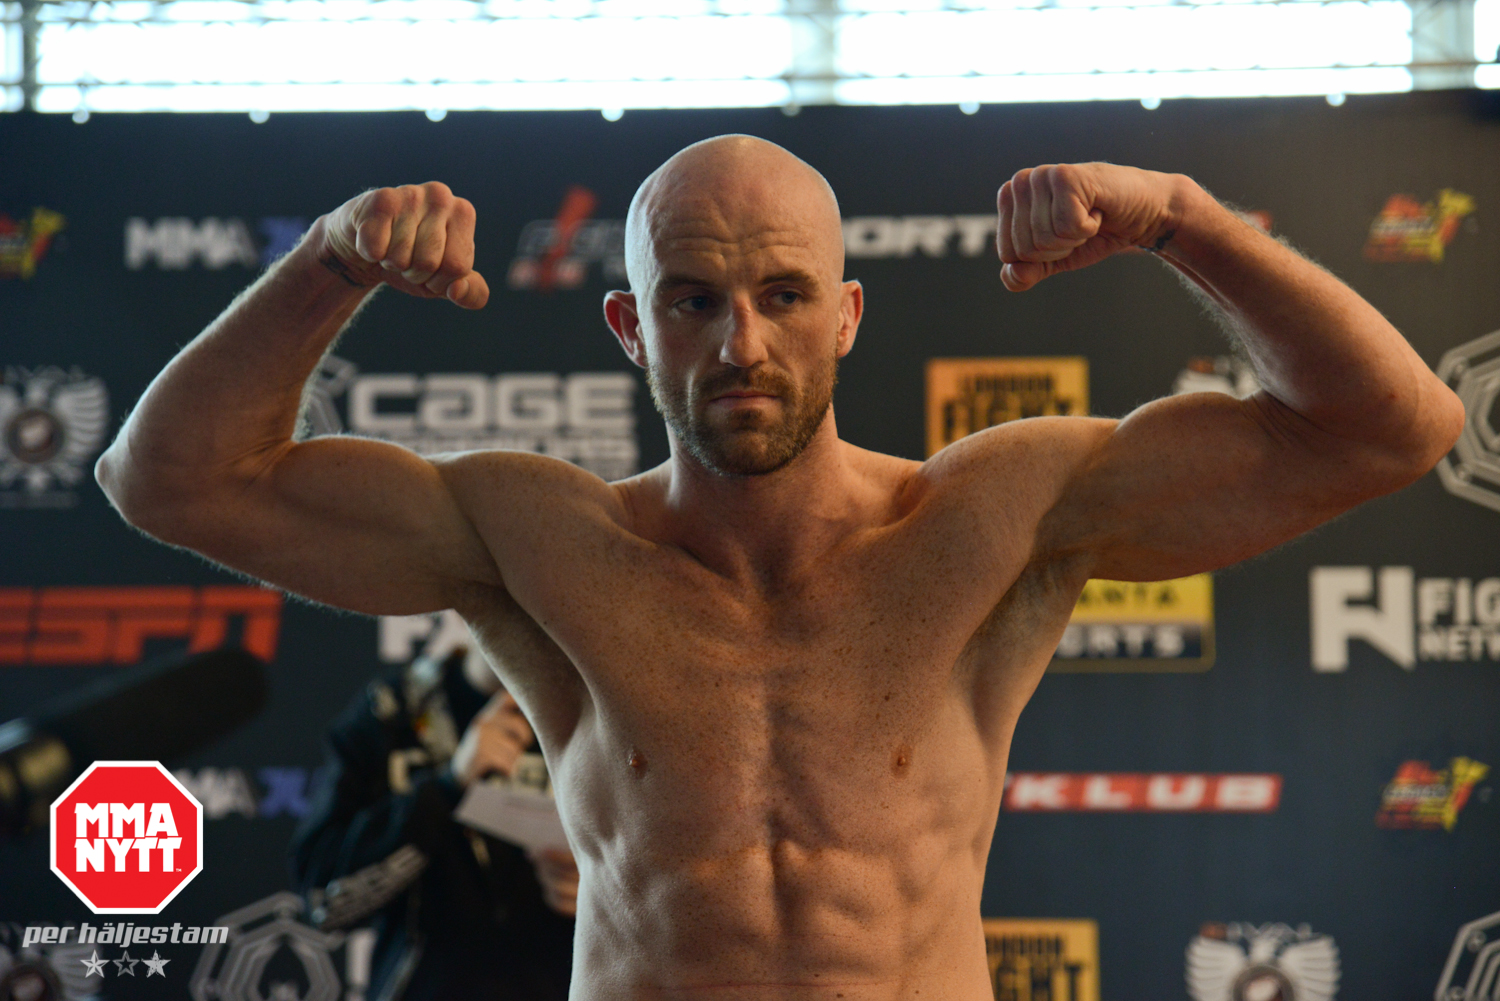 Peter queally mma